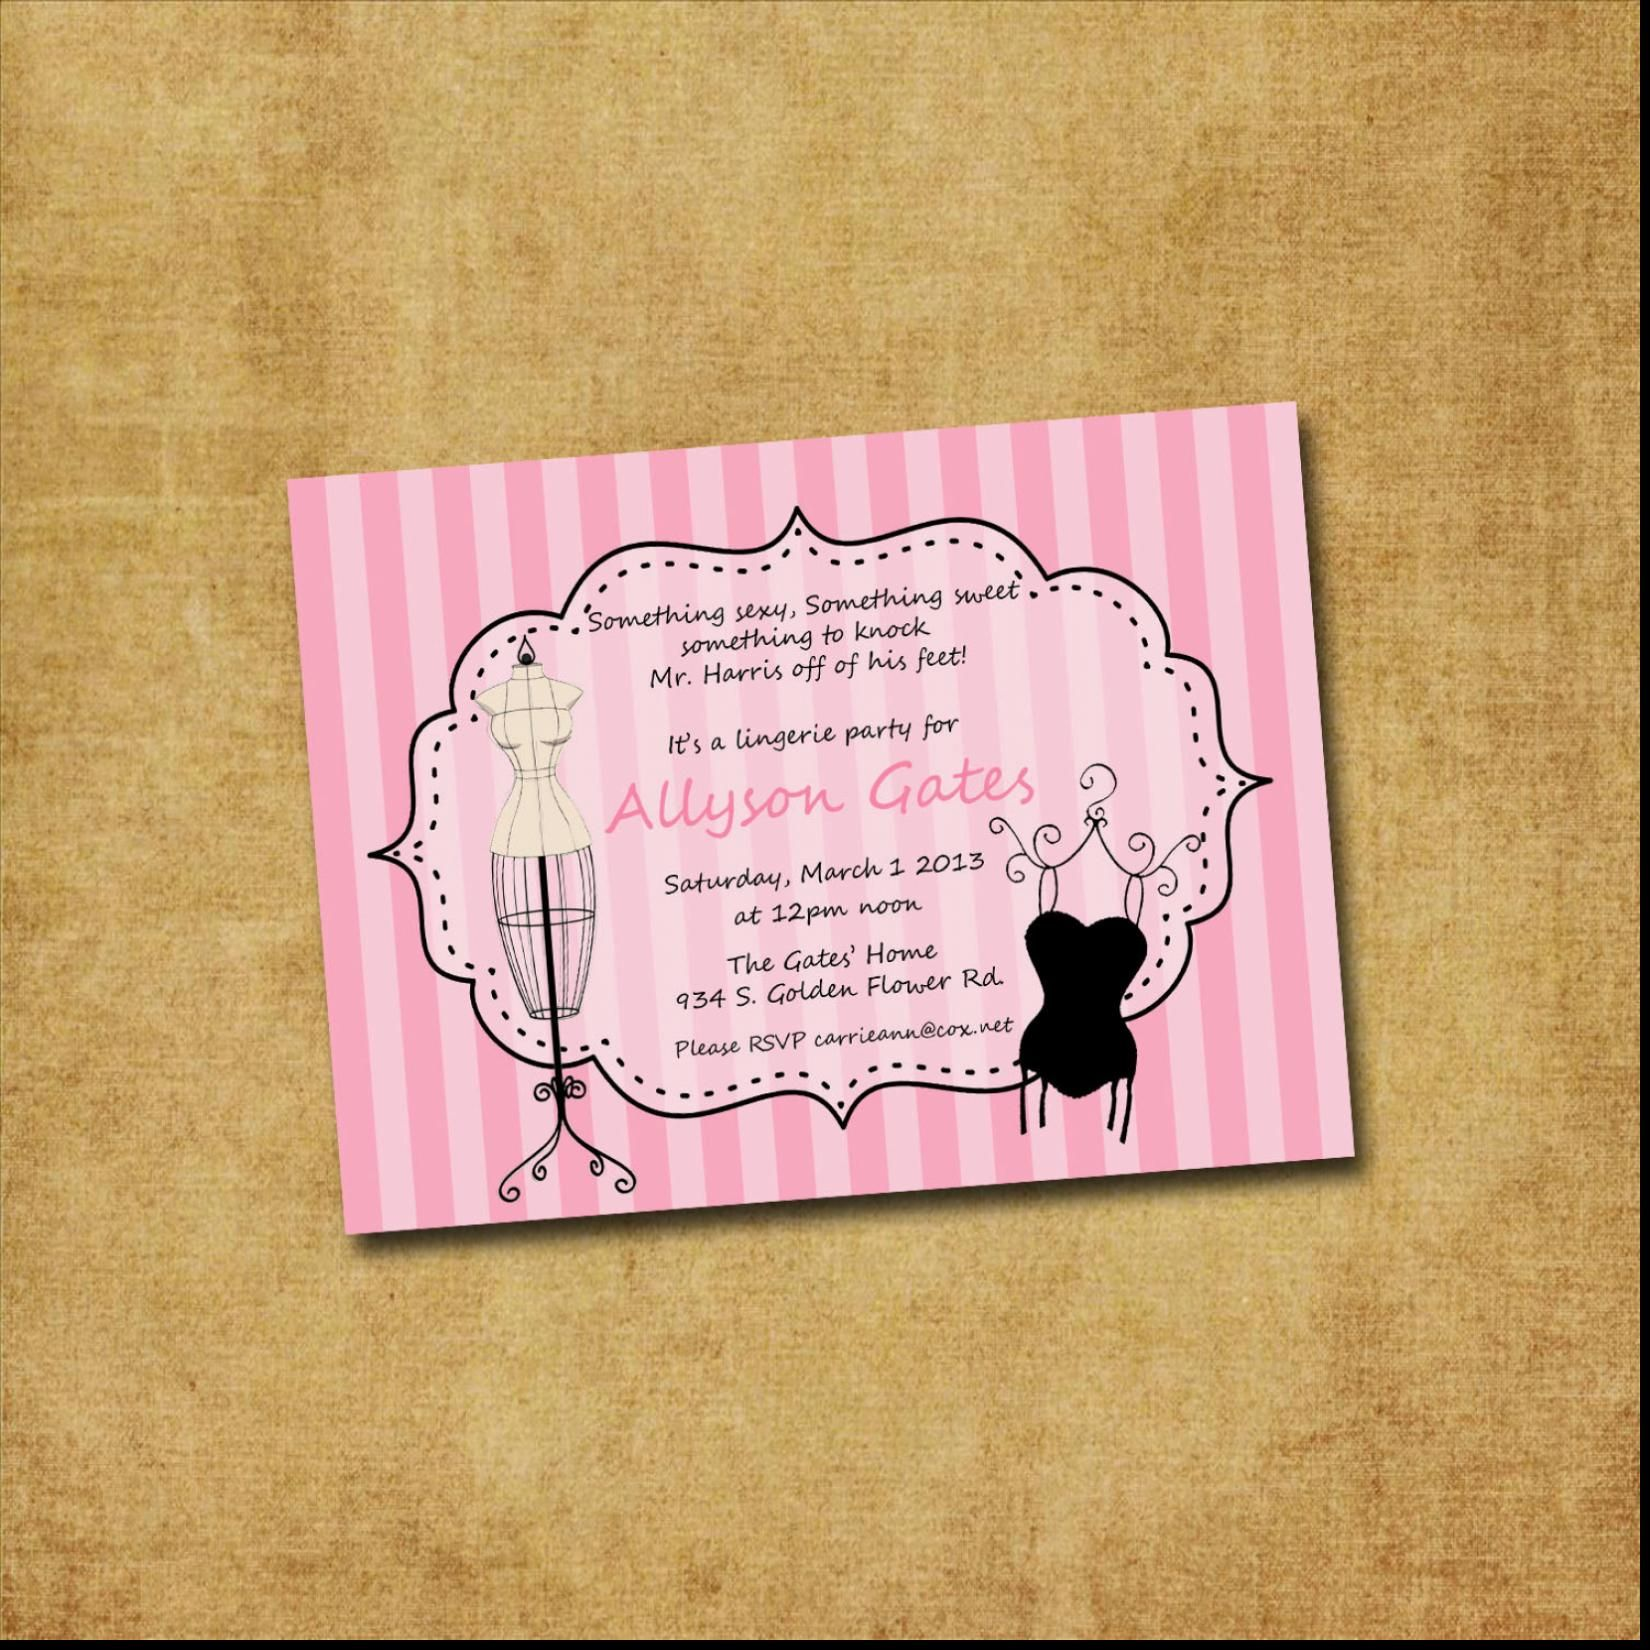 Best Costco Baby Shower Invitations Designs Ideas Check more at http